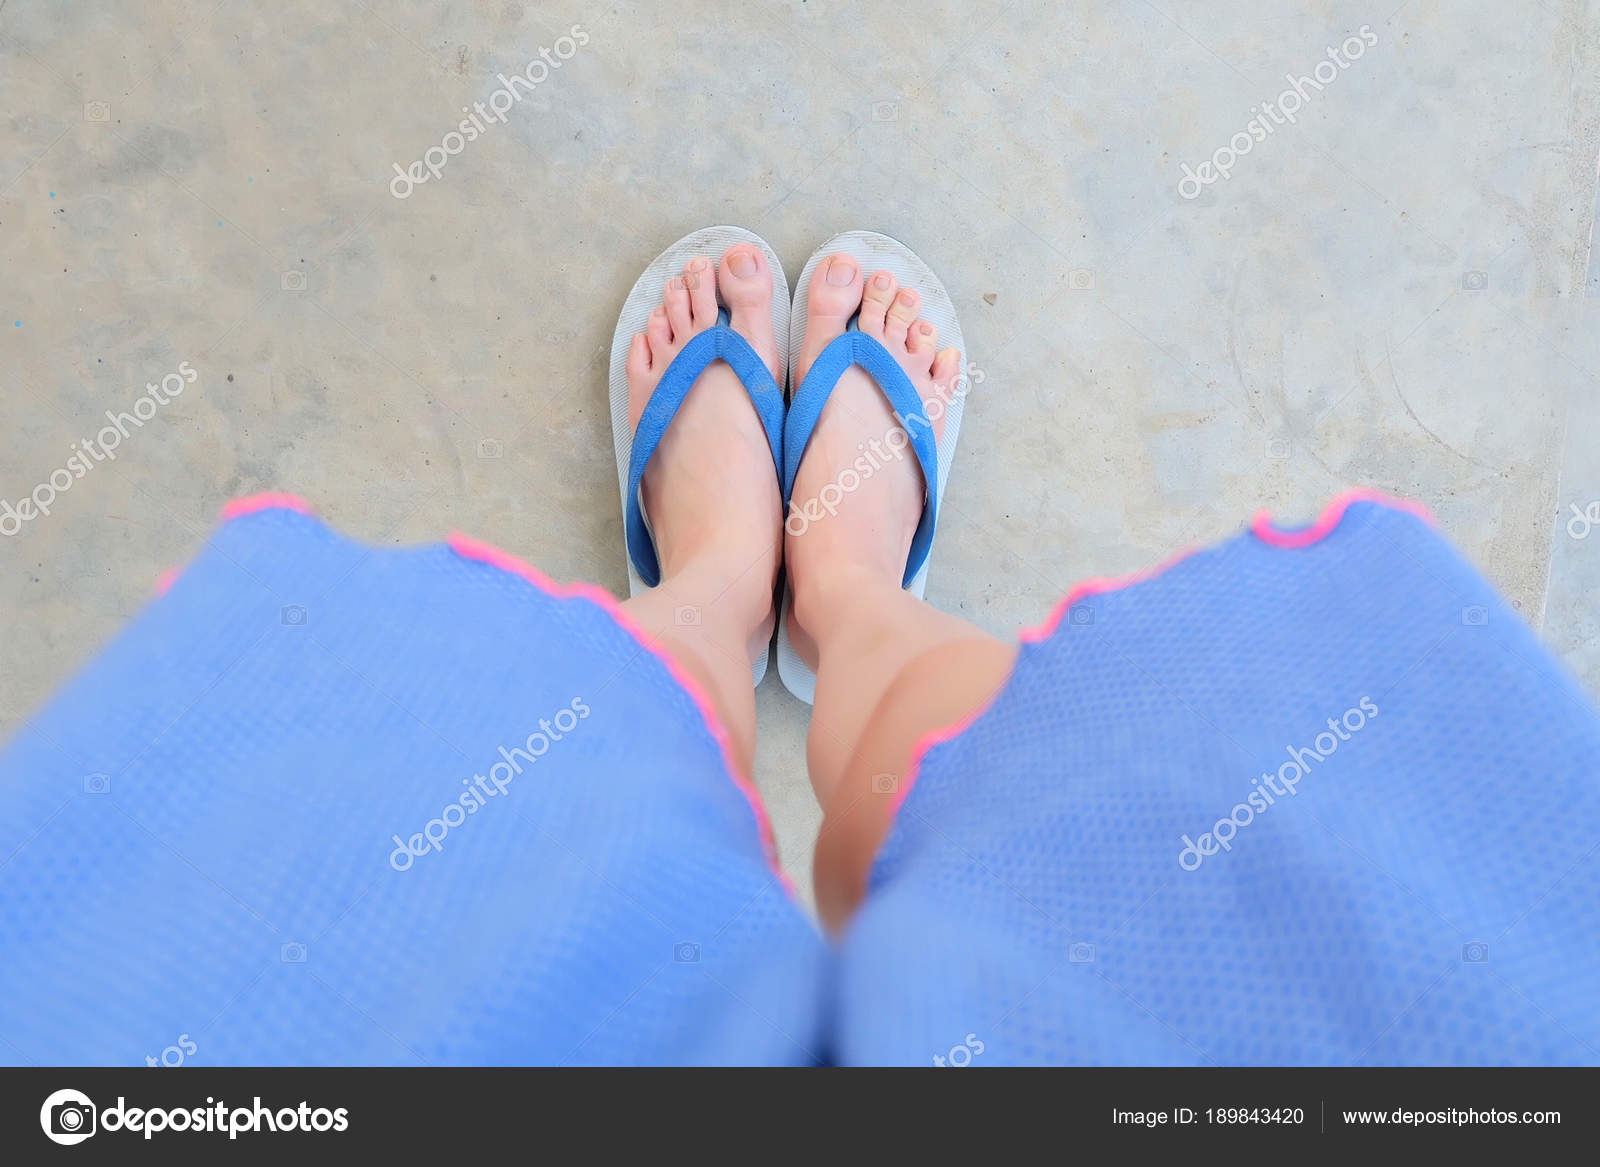 a5b89a0ad75920 Selfie Blue Shoes Isolated on Concrete for Top View. Womans Feet Wearing  Blue Pajamas and Flip Flop (Slippers) on The Cement Floor Background Great  For Any ...